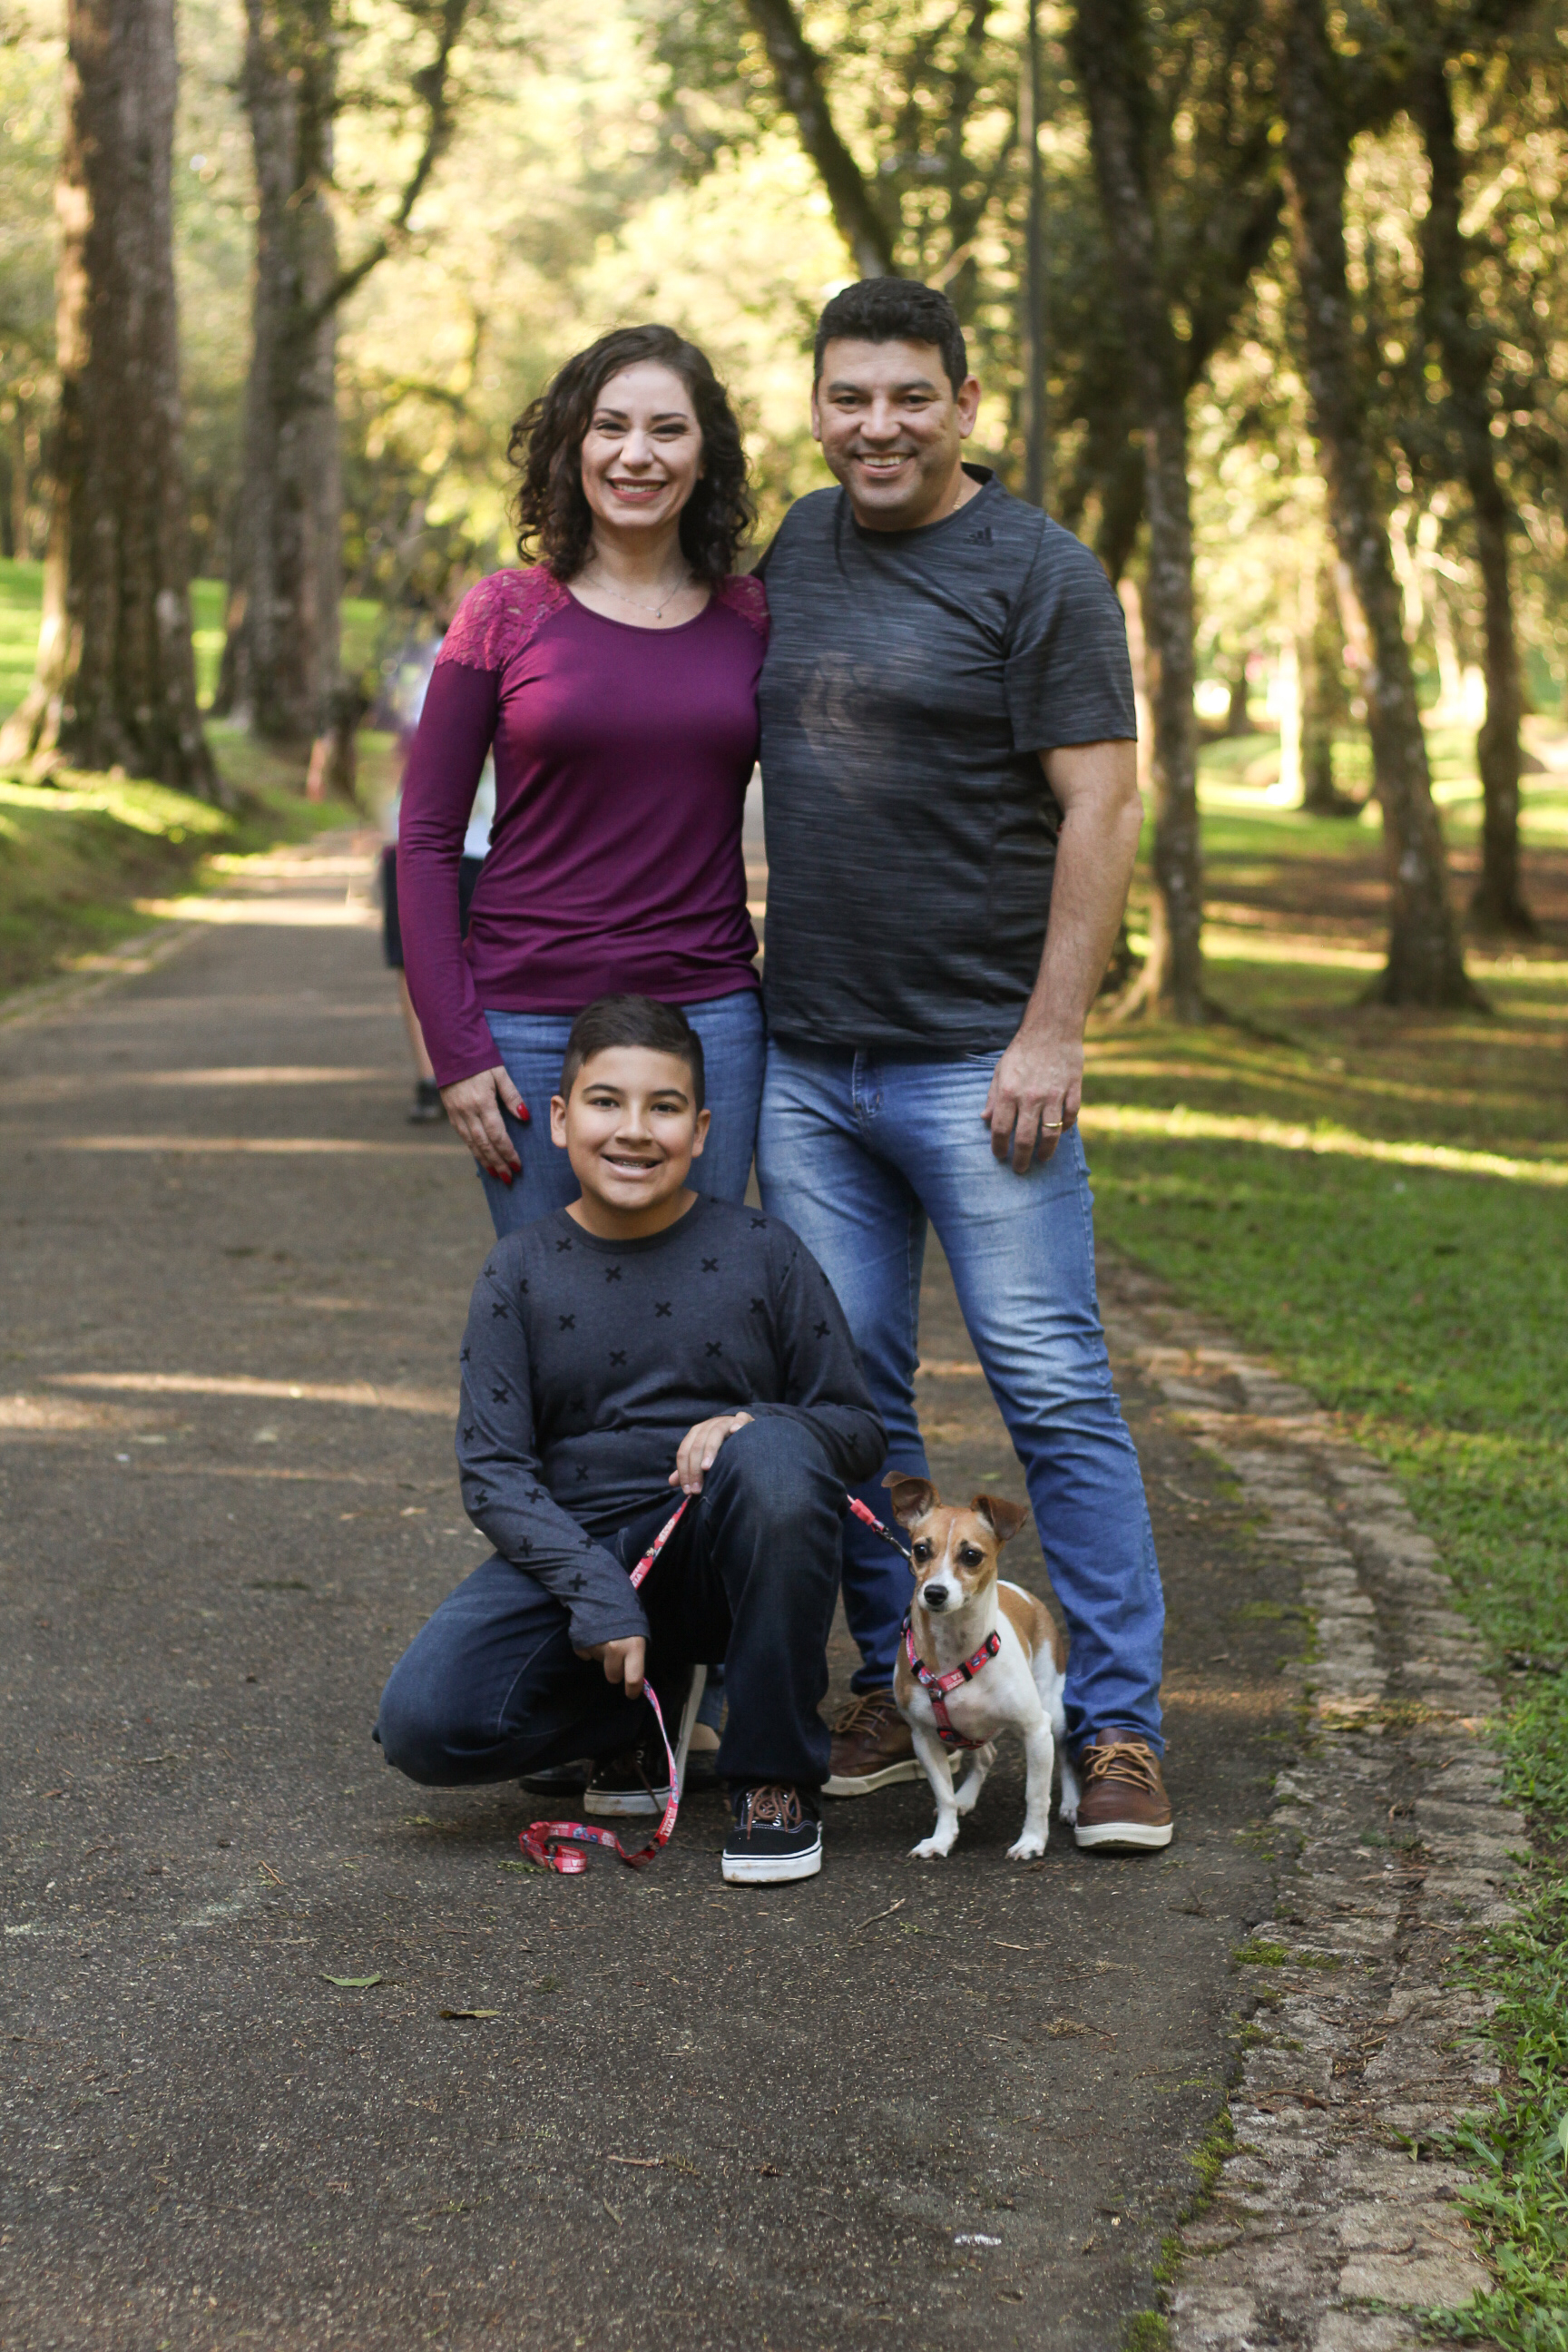 A family stands in a park and smiles at the camera, posing with their dog.